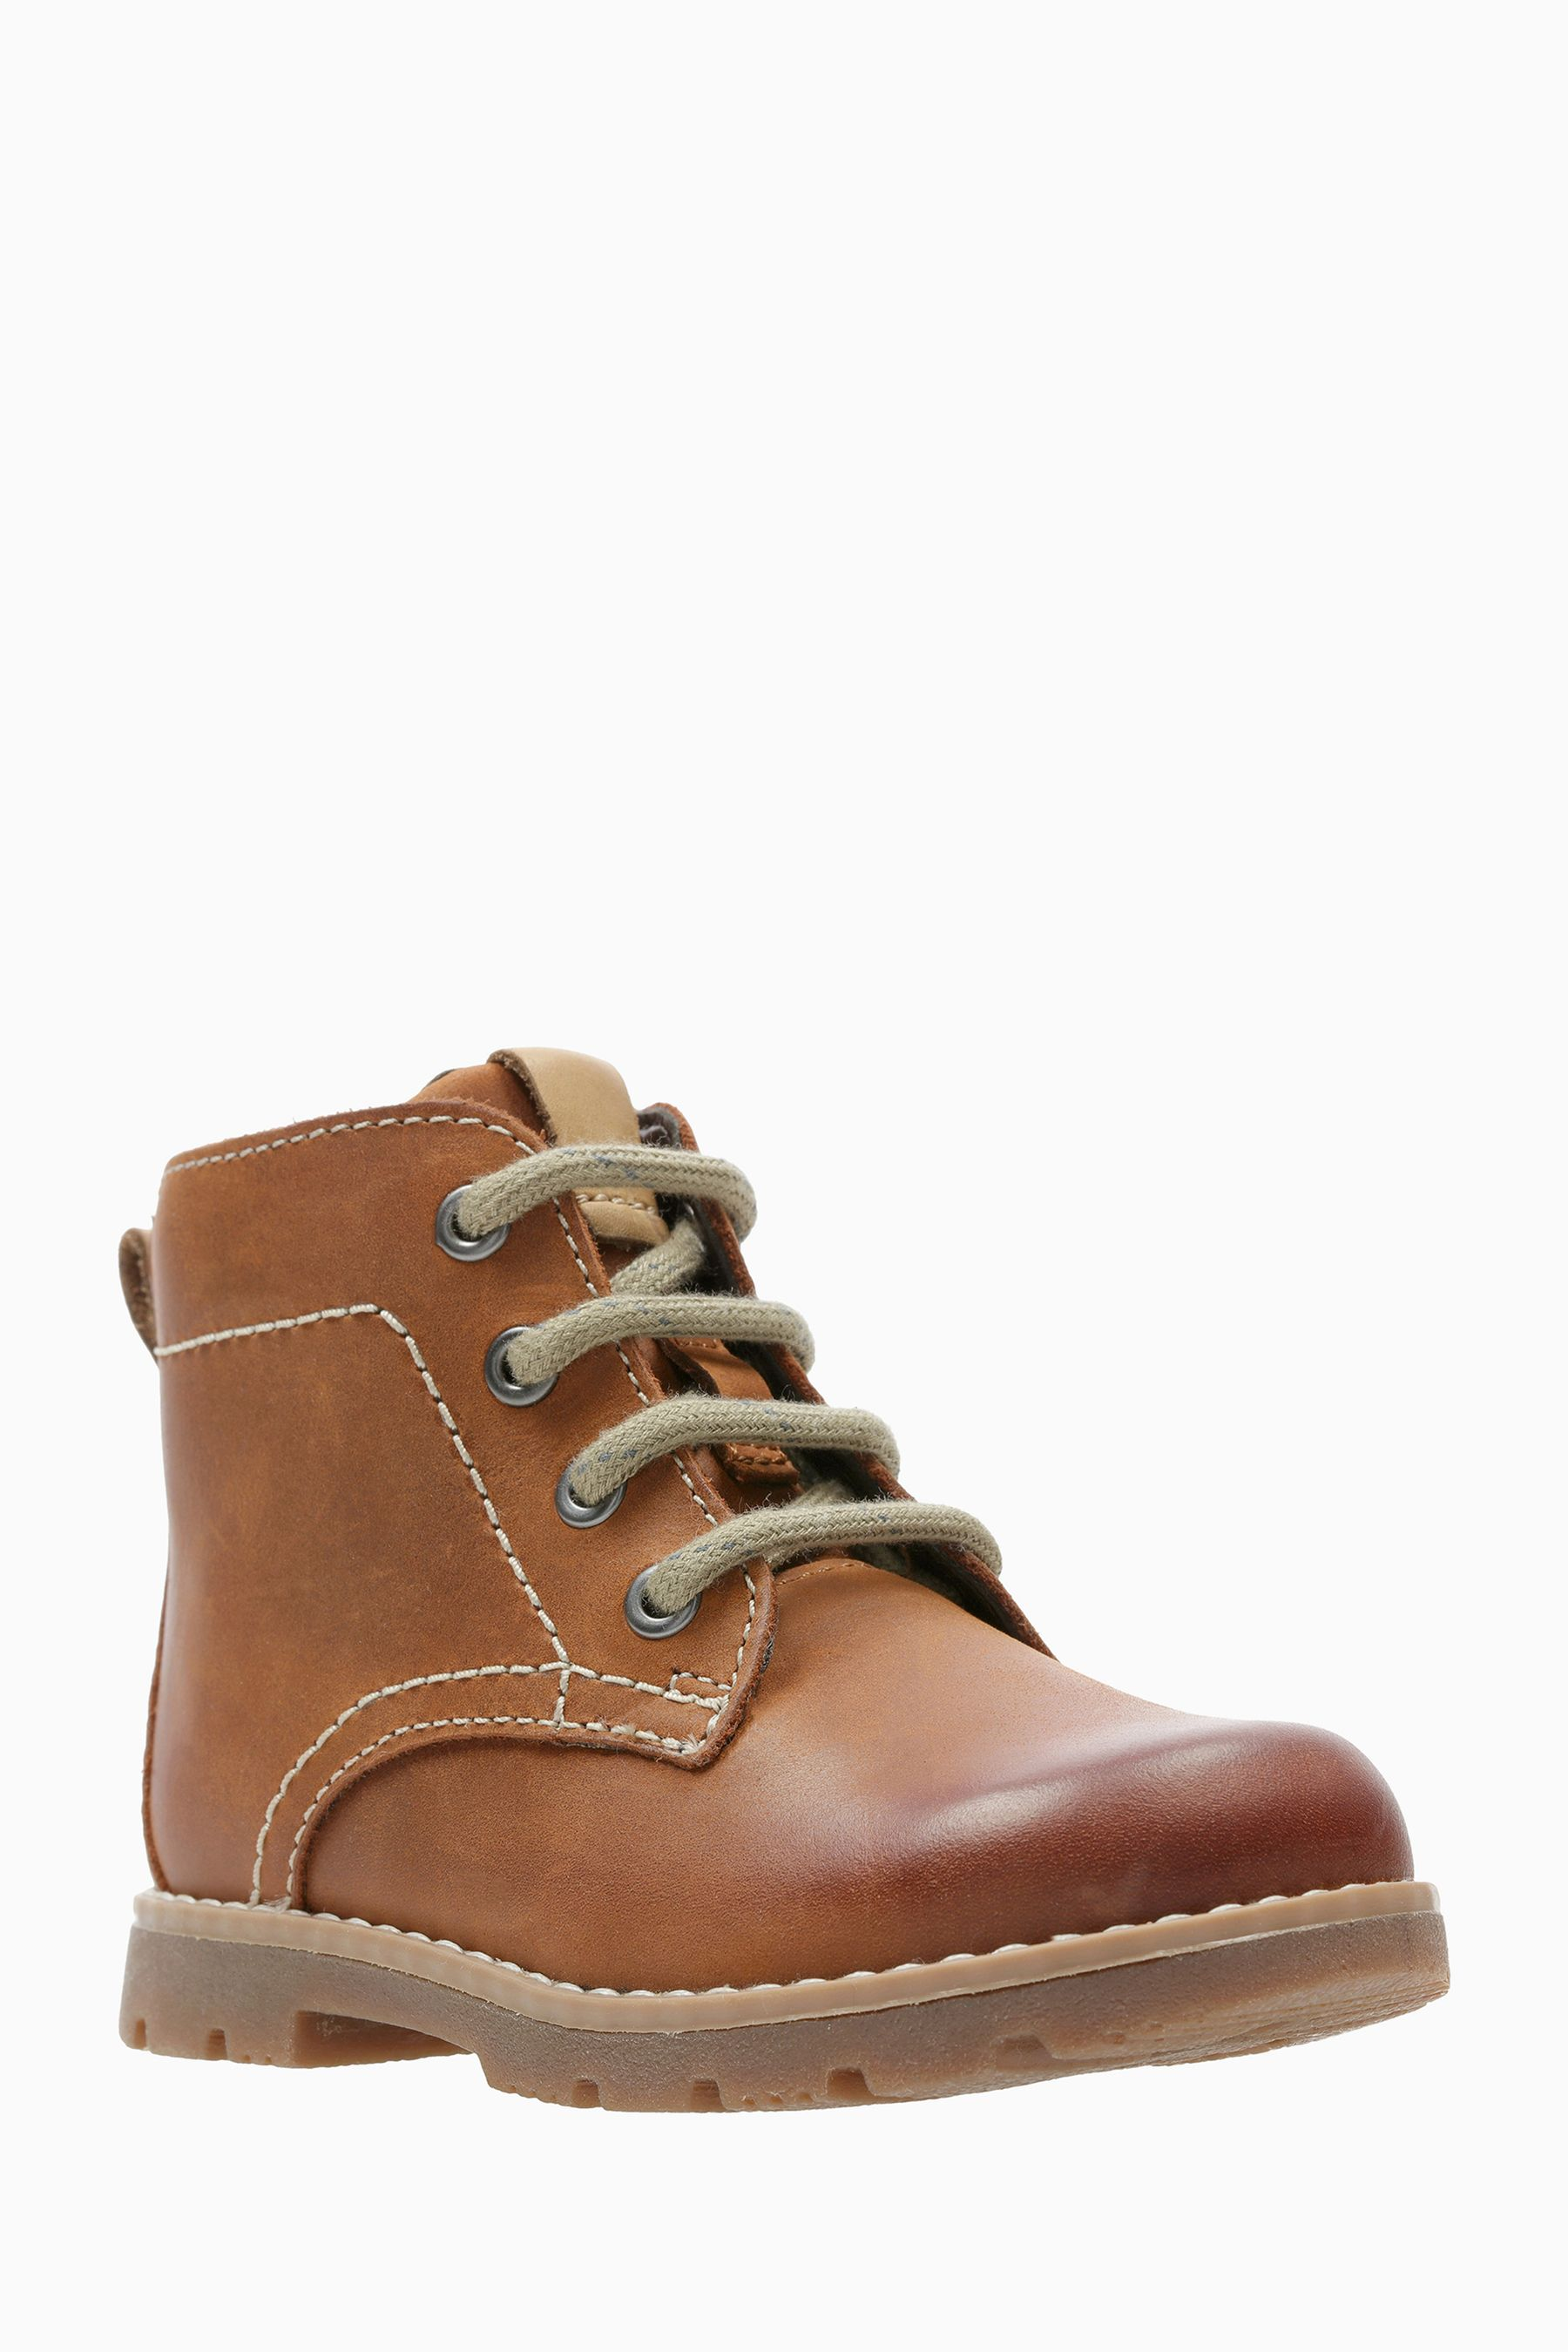 d8f59cd63a Boys Clarks Tan Leather Comet Rock Lace-Up Stitch Ankle Boot - Brown ...